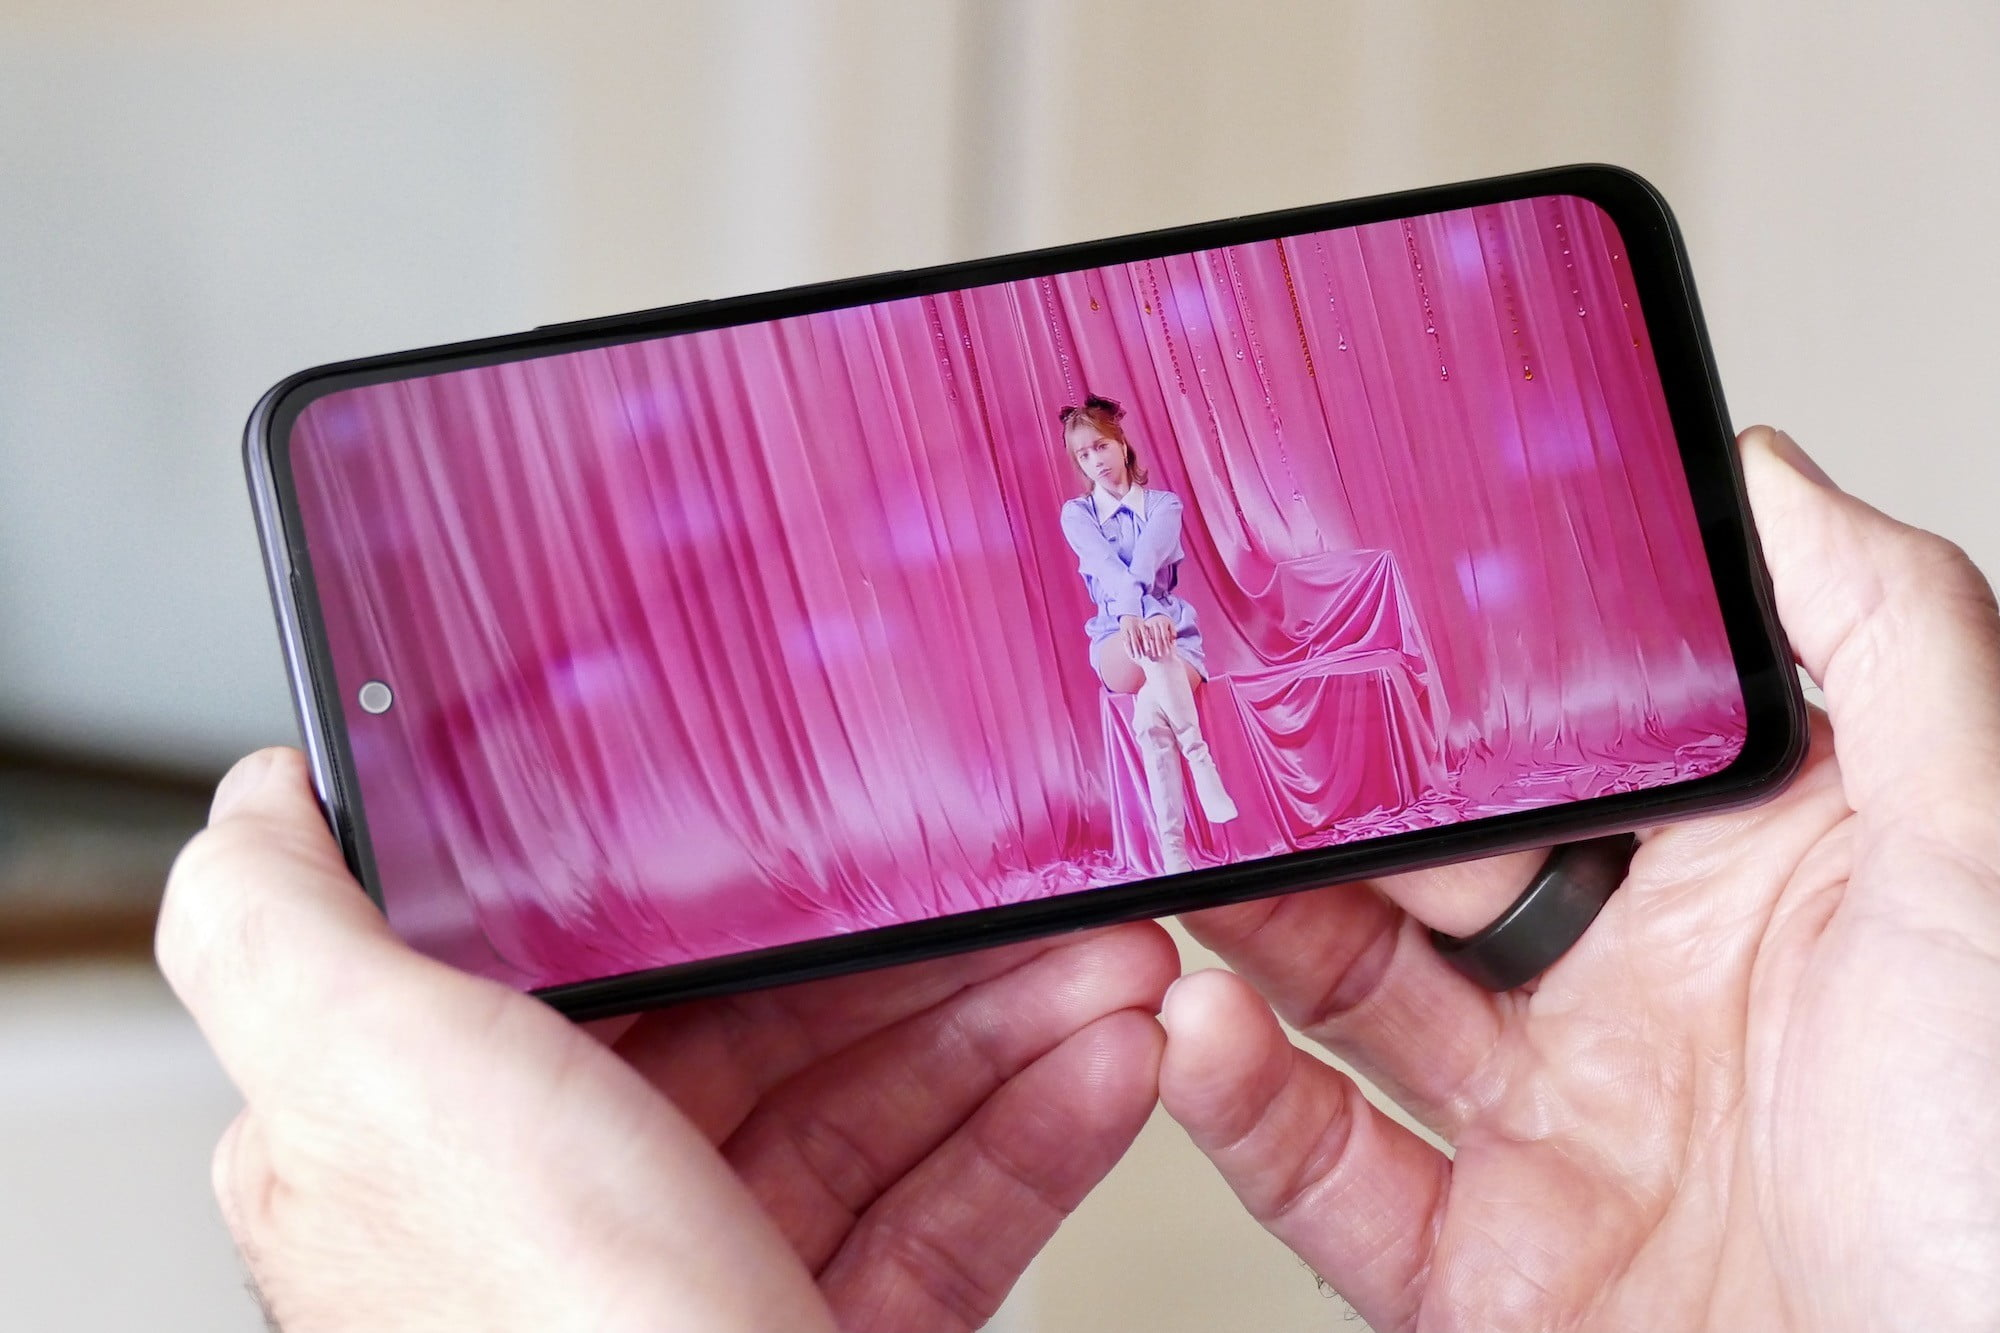 Video playing on the Xiaomi Redmi Note 10S.